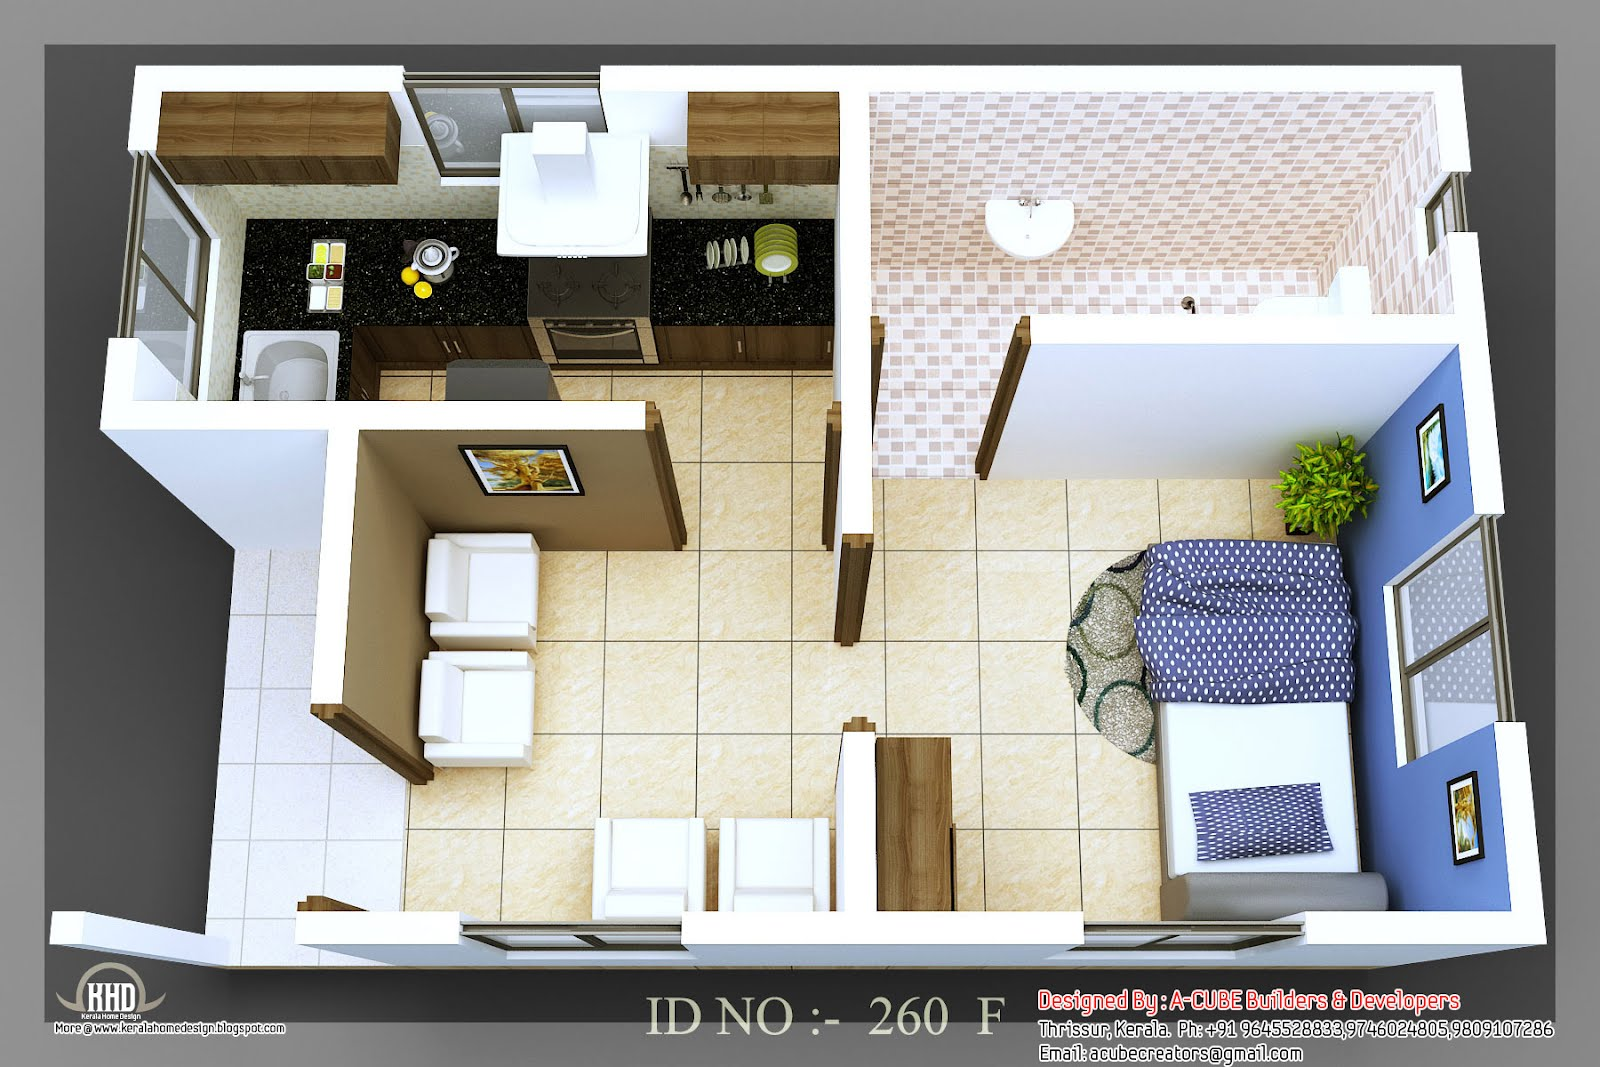 3d isometric views of small house plans home appliance for Small modern house designs and floor plans